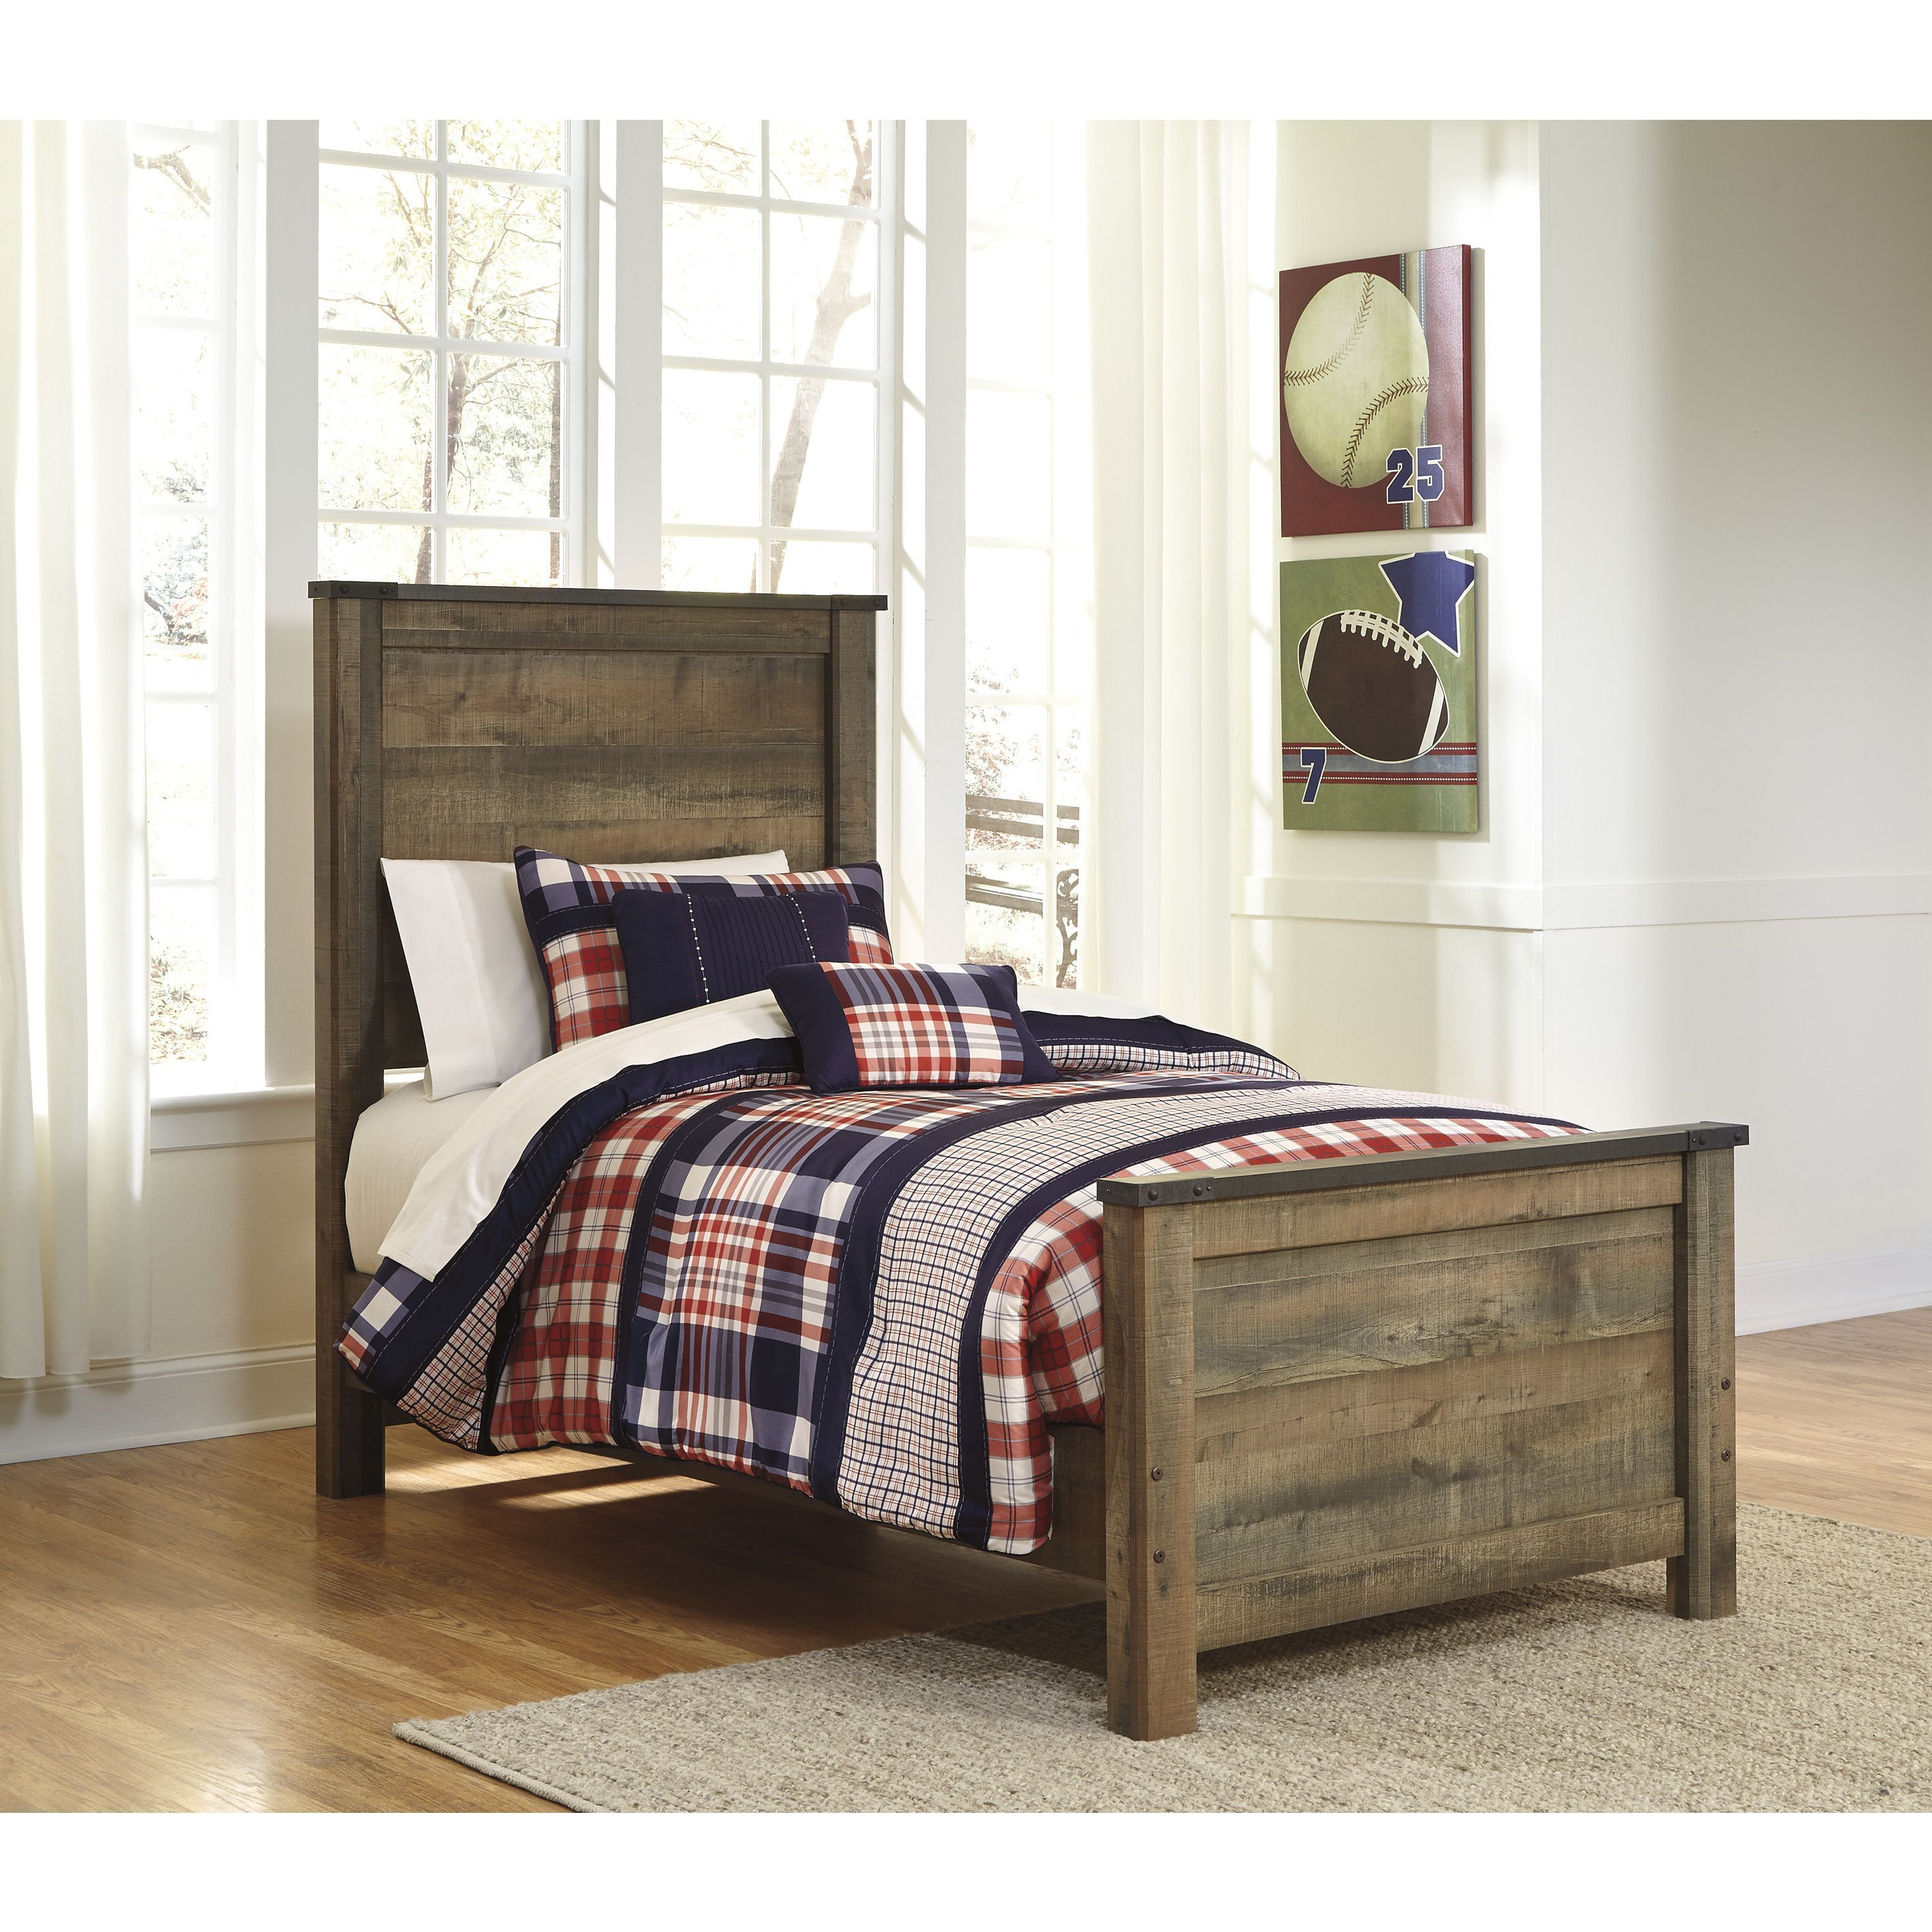 Signature Design By Ashley Trinell Brown Twin Size Bed Frame Twin Size Bed Frame Twin Size Bed Frame Panel Bed Bed Furniture